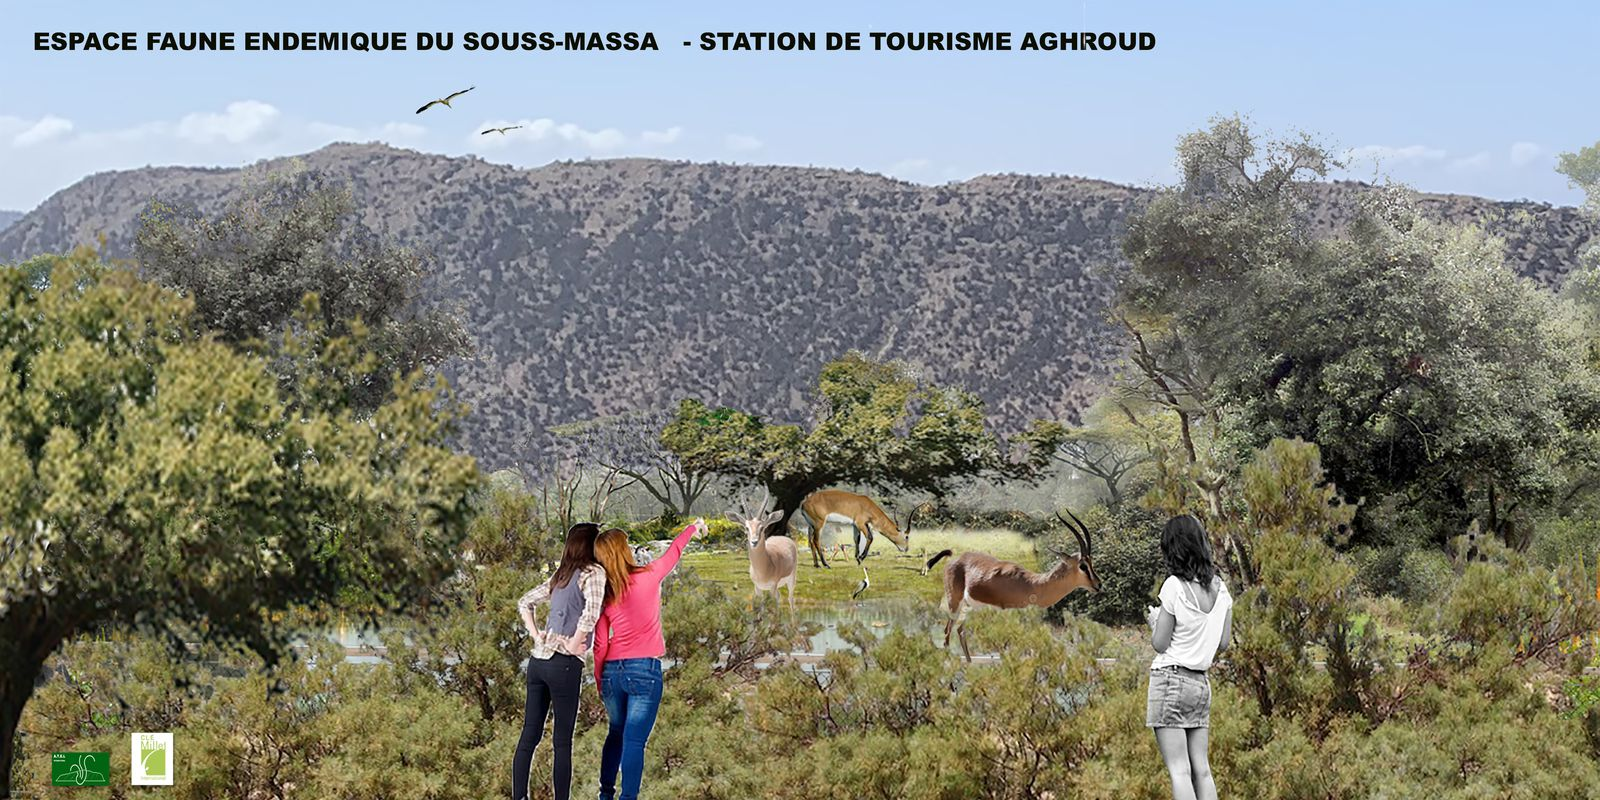 MASTER PLAN STATION TOURISTIQUE  - AGHROUD  - MAROC